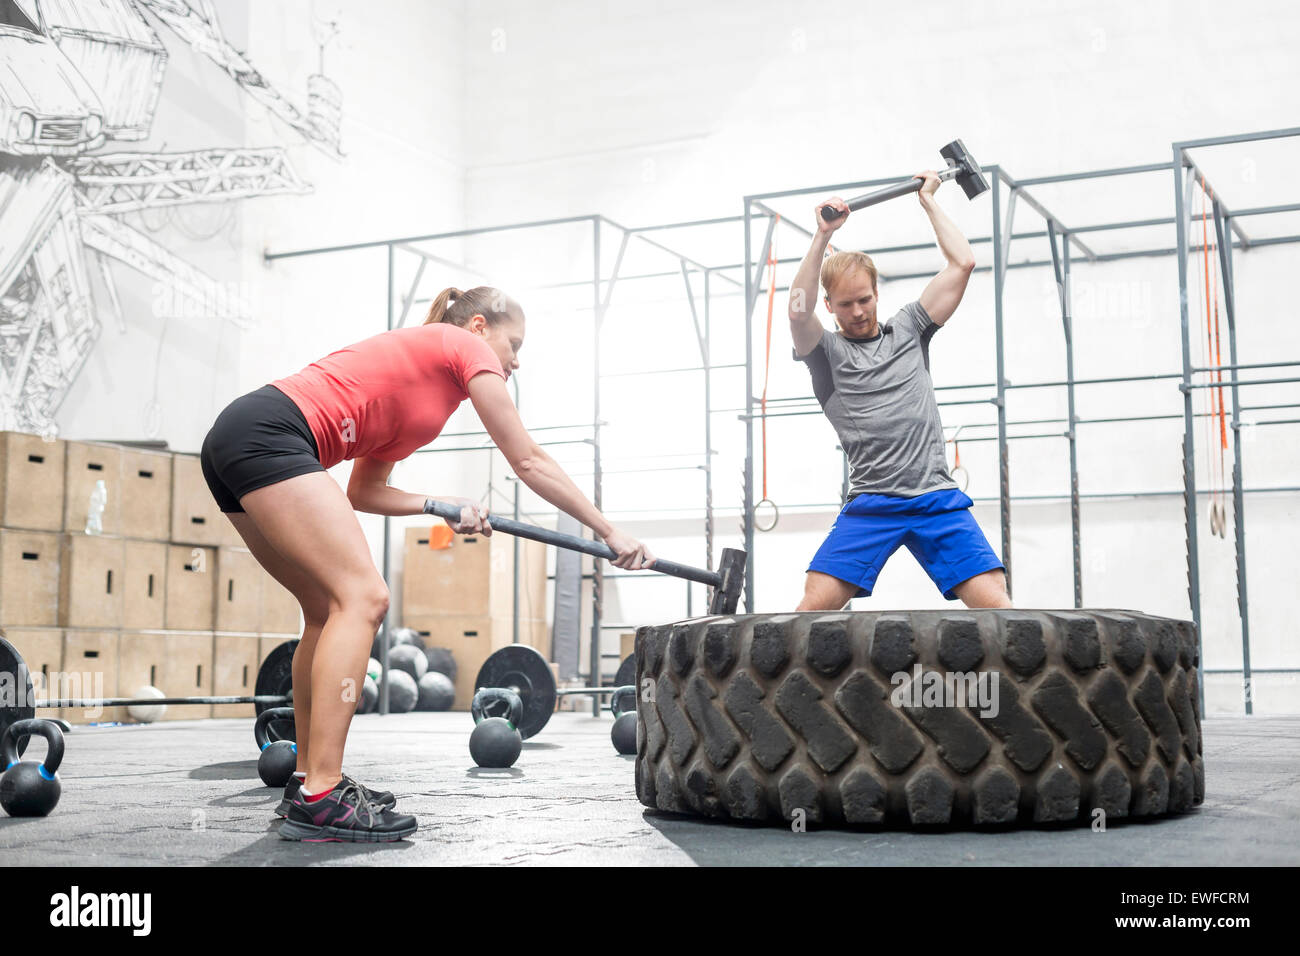 Man and woman hitting tire with sledgehammer in crossfit gym - Stock Image